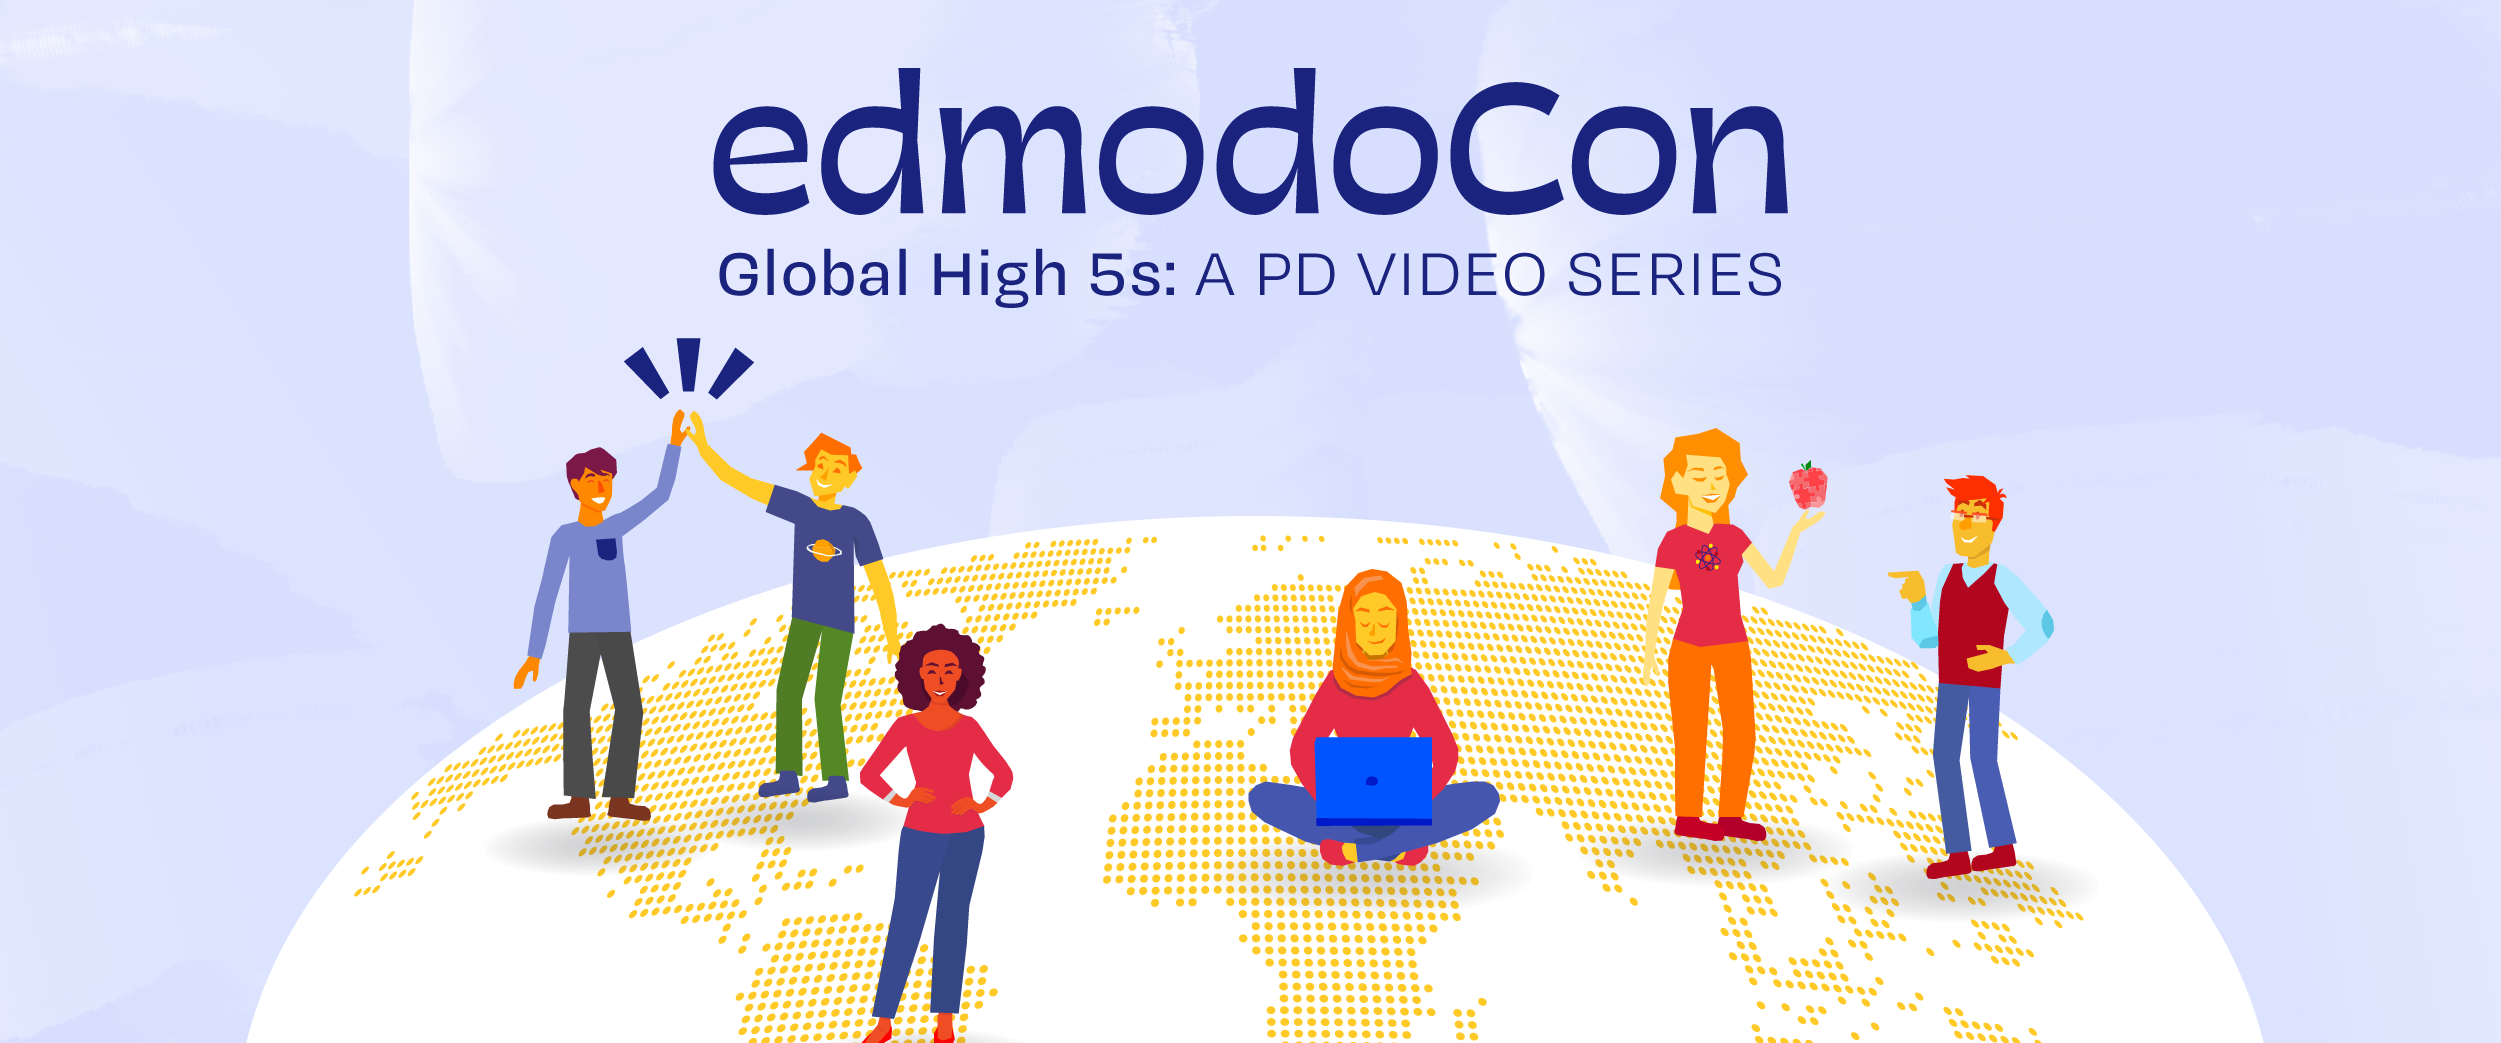 A New EdmodoCon for a New Normal